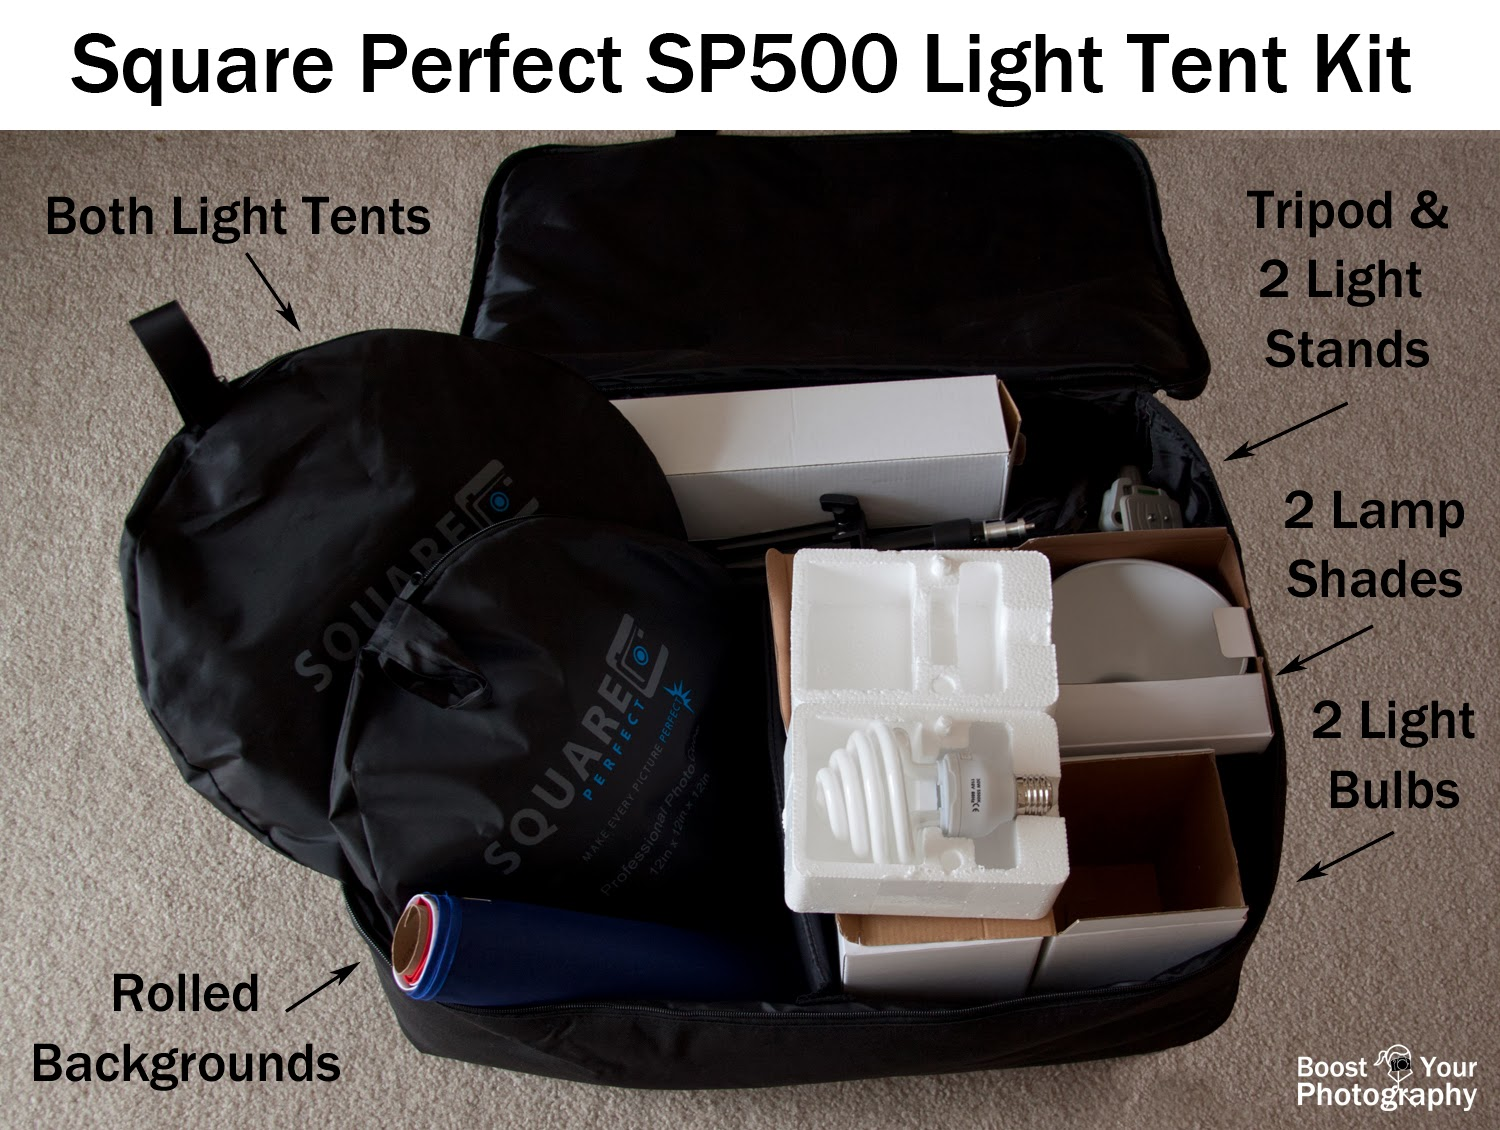 Square Perfect SP500 Platinum Photo Studio in a Box Light Tent | Boost Your Photography